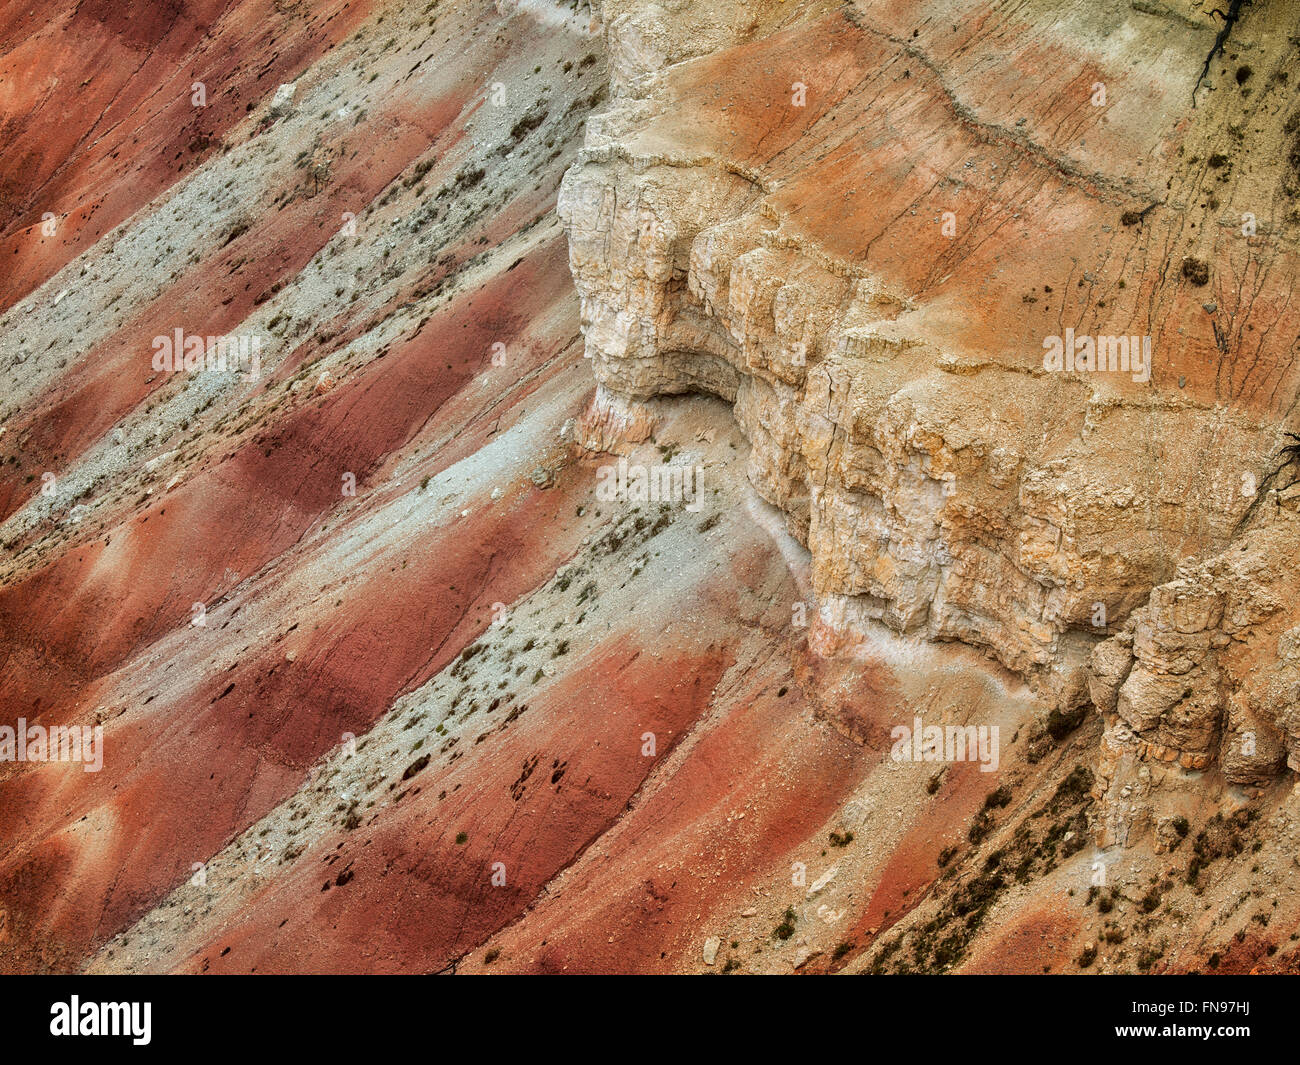 Canyon lands in Cedar Breaks National monument, Utah - Stock Image